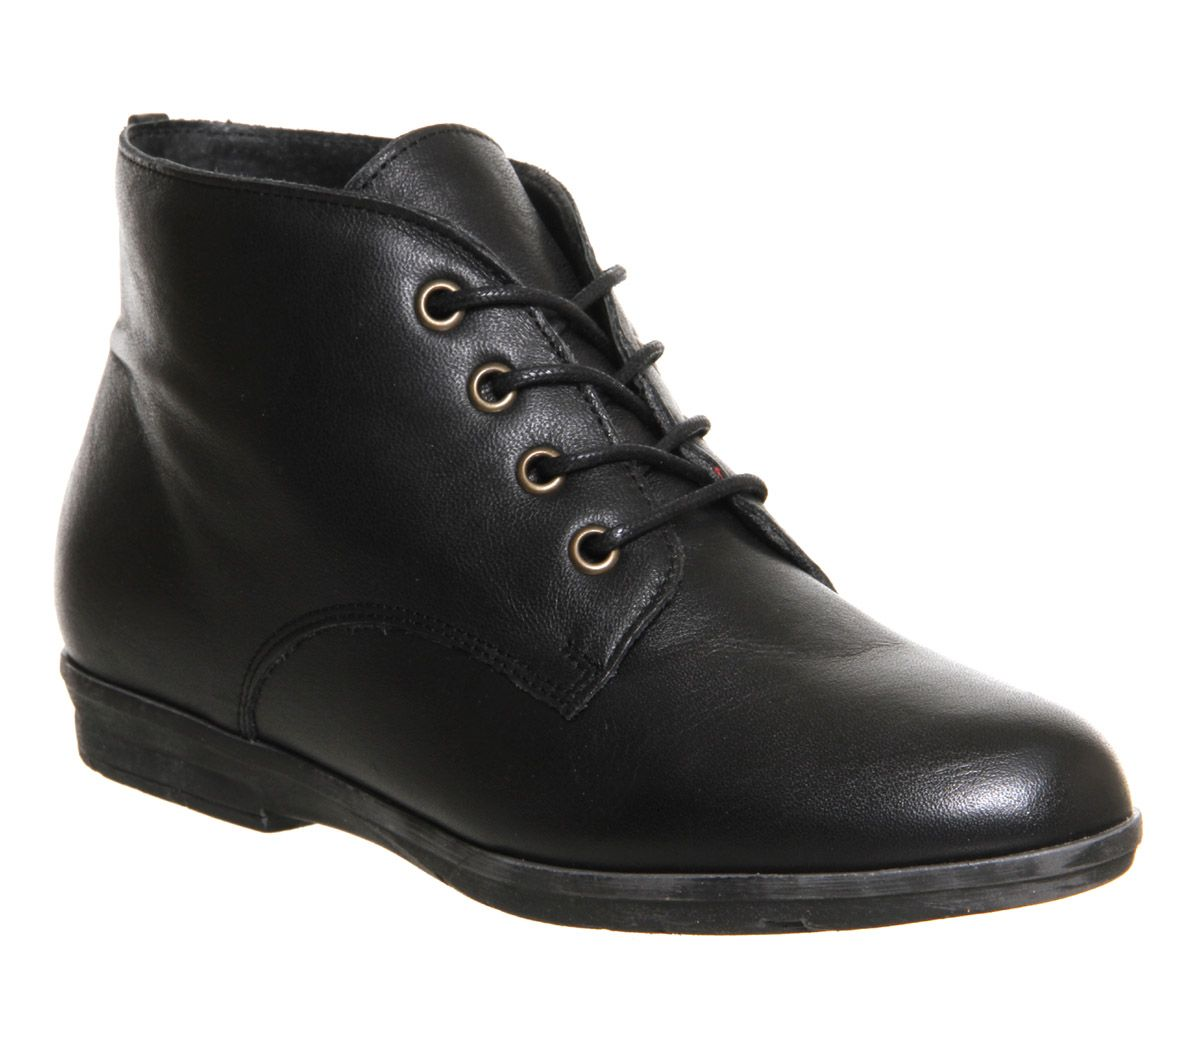 Office Fable Lace Up Black Leather Ankle Boots